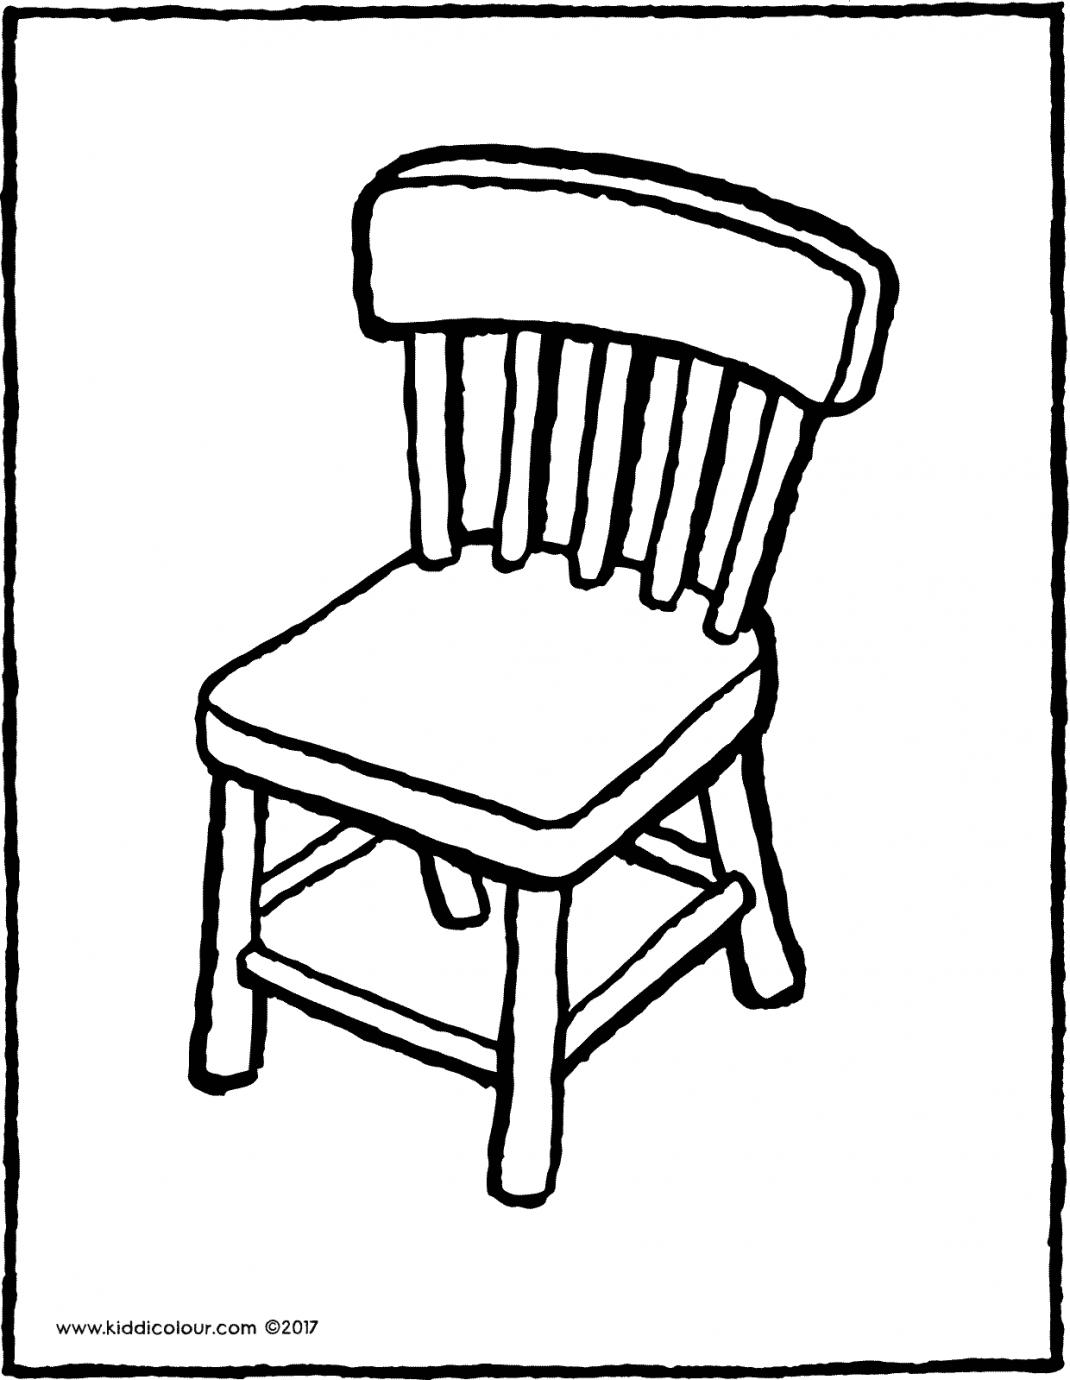 chair colouring page drawing picture 02V